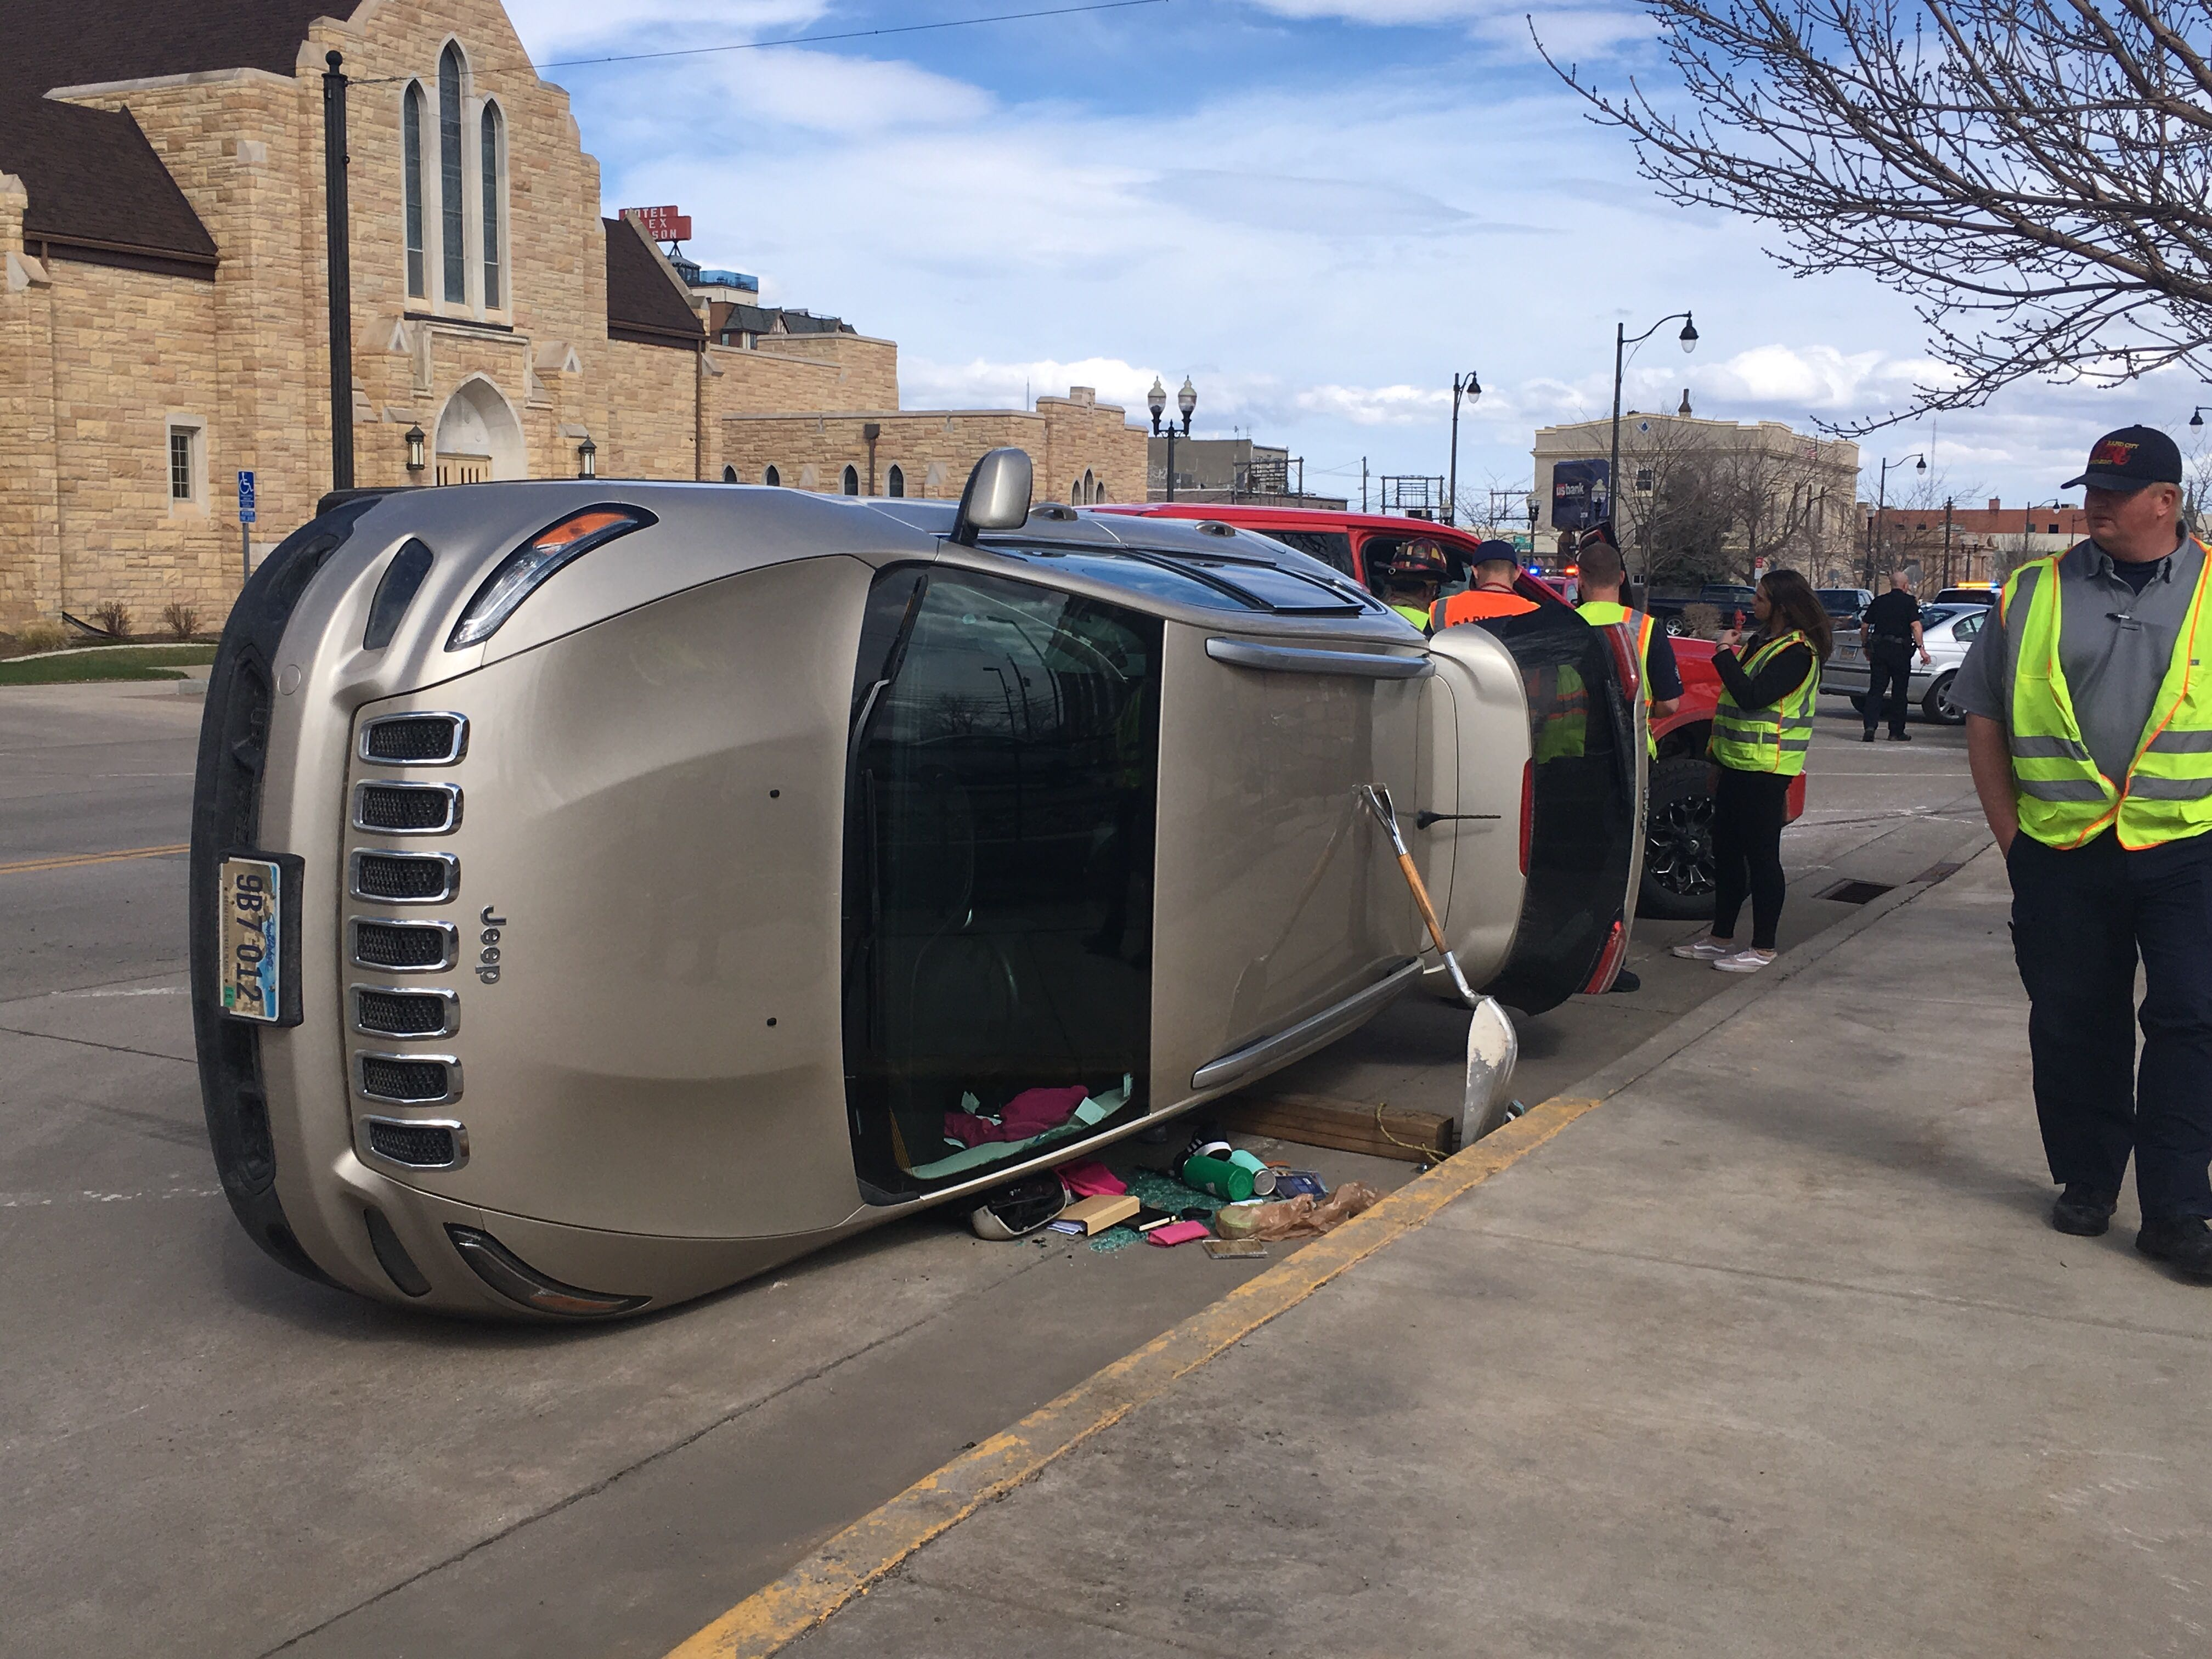 Authorities on scene of multi-vehicle accident in downtown Rapid